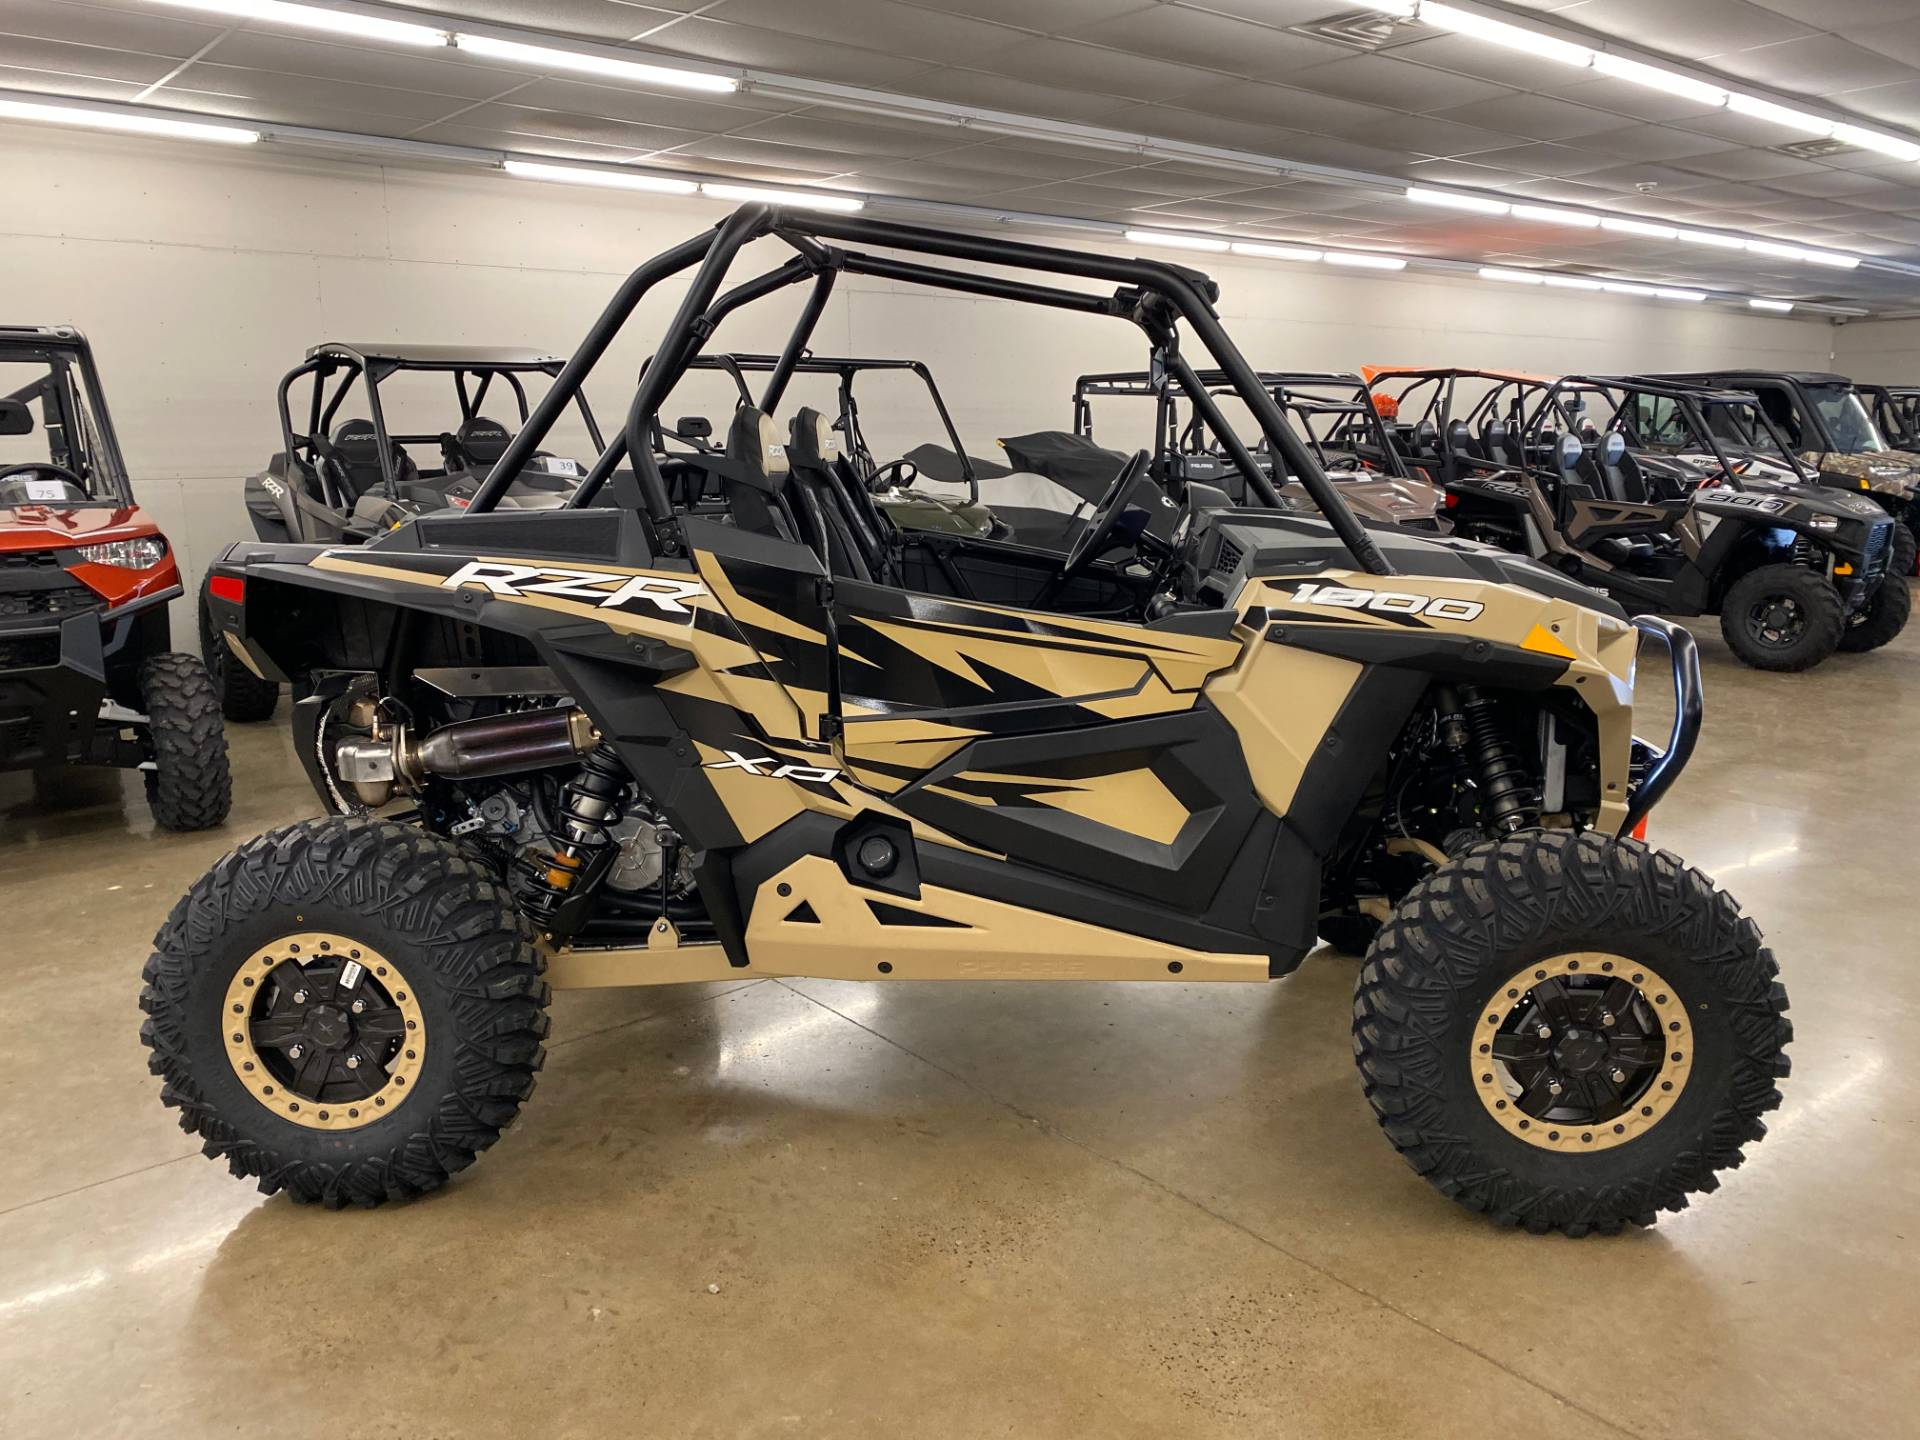 2020 Polaris RZR XP 1000 Trails & Rocks in Chicora, Pennsylvania - Photo 3